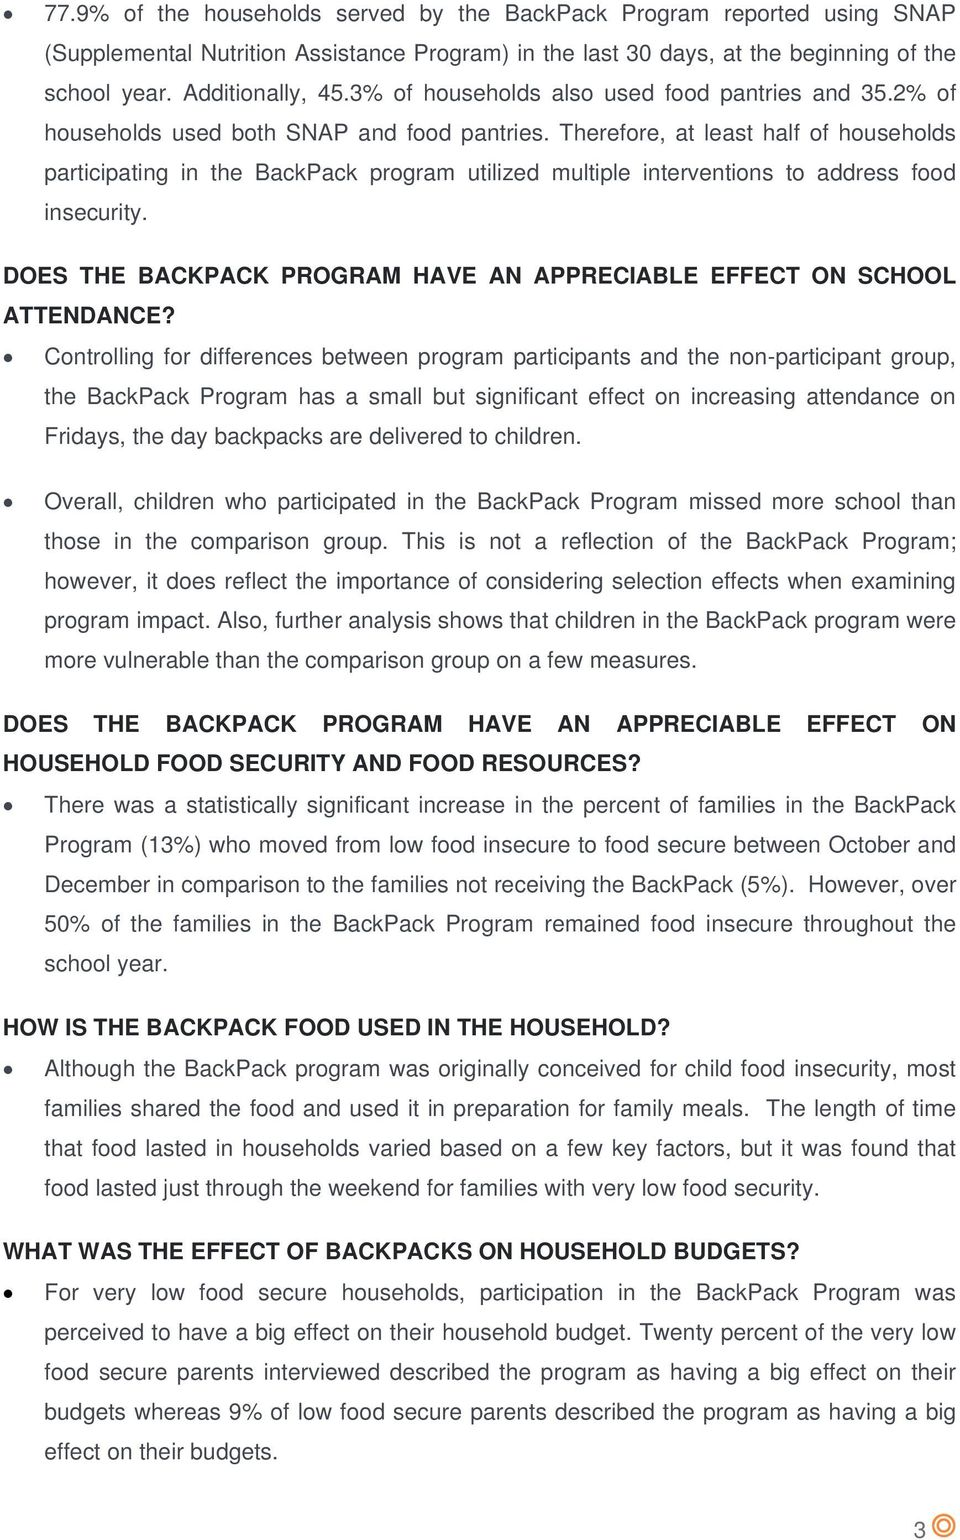 Therefore, at least half of households participating in the BackPack program utilized multiple interventions to address food insecurity.